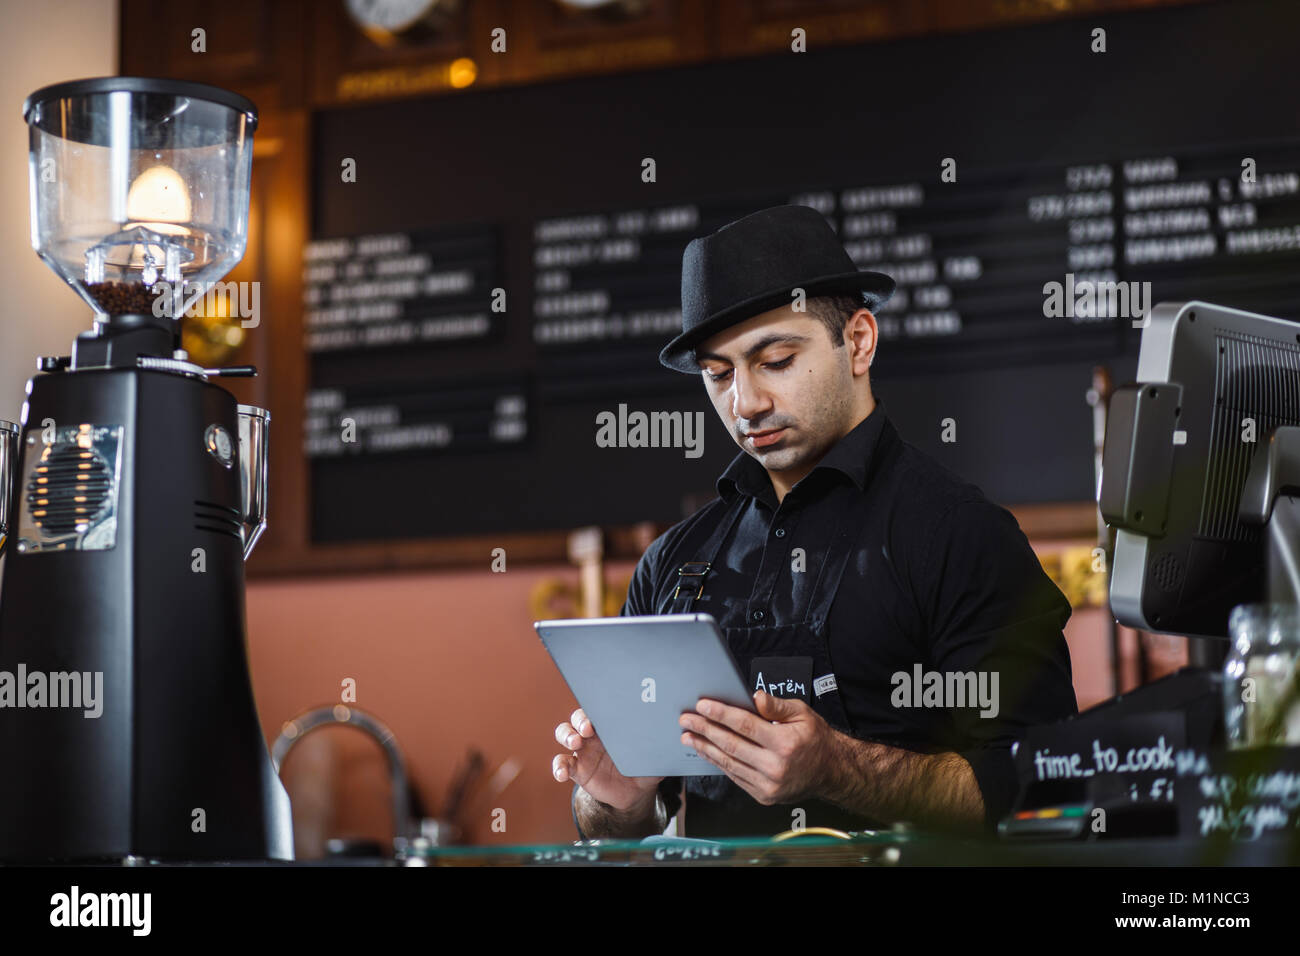 Portrait of barista holding digital tablet at counter in coffee shop. - Stock Image